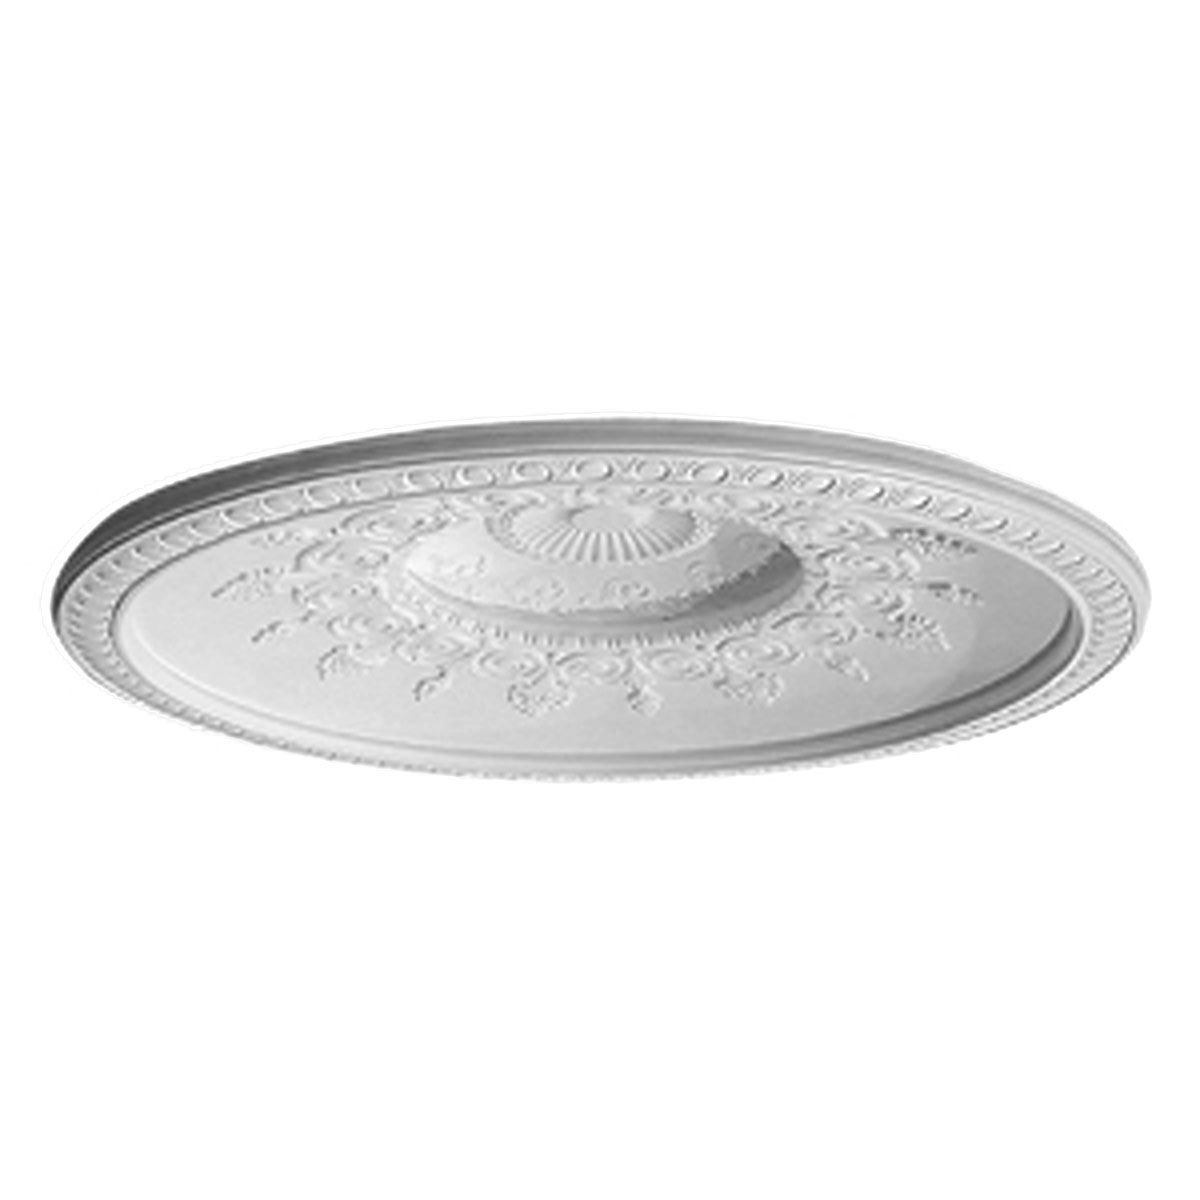 """DOME47AN 47-1/2""""OD x 41-3/4""""ID x 8-5/8""""D,Andrea Ceiling Dome,2-7/8""""W Trim (41-3/8"""" Diameter x 7""""D Rough Opening)"""